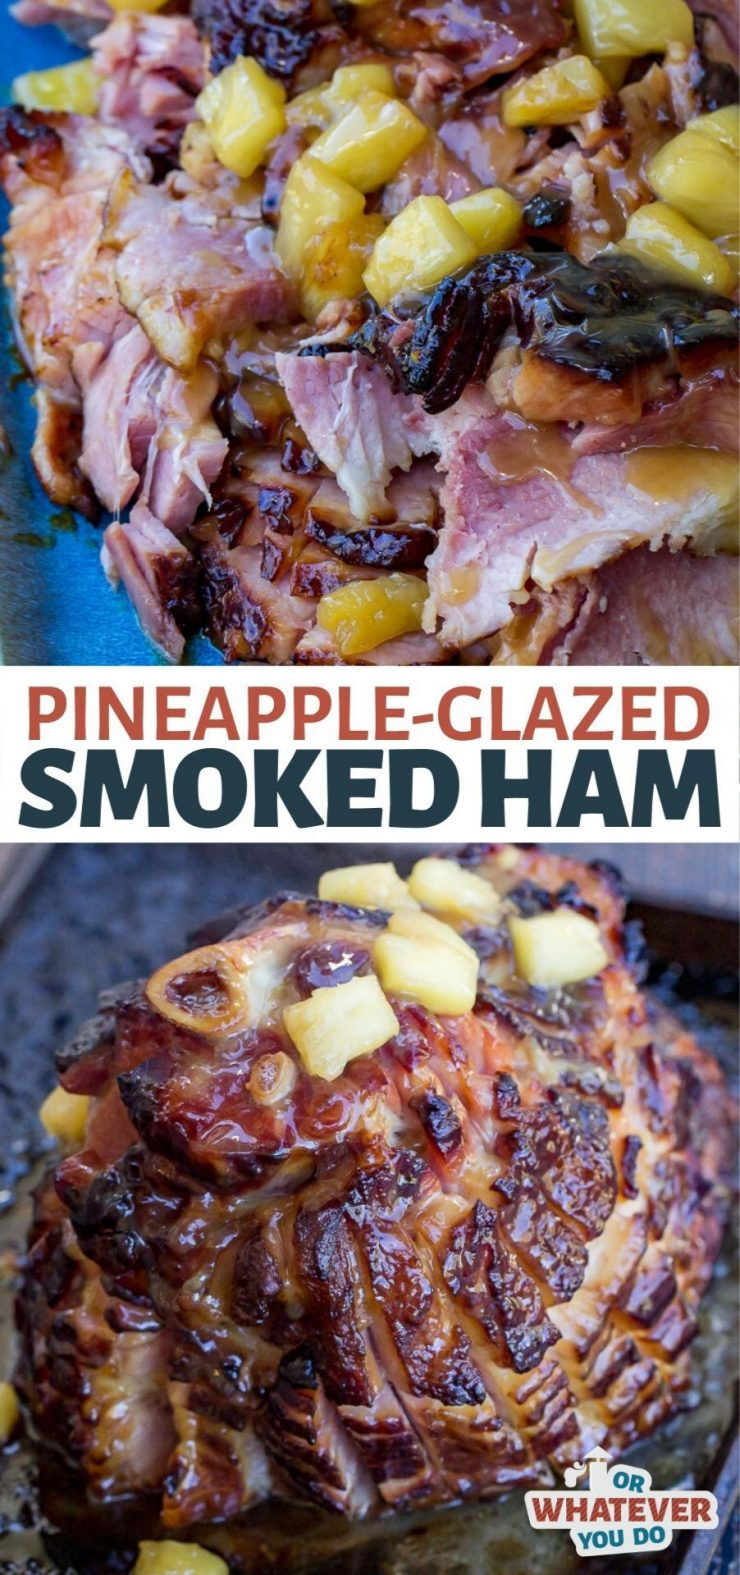 Pineapple-Glazed Smoked Ham